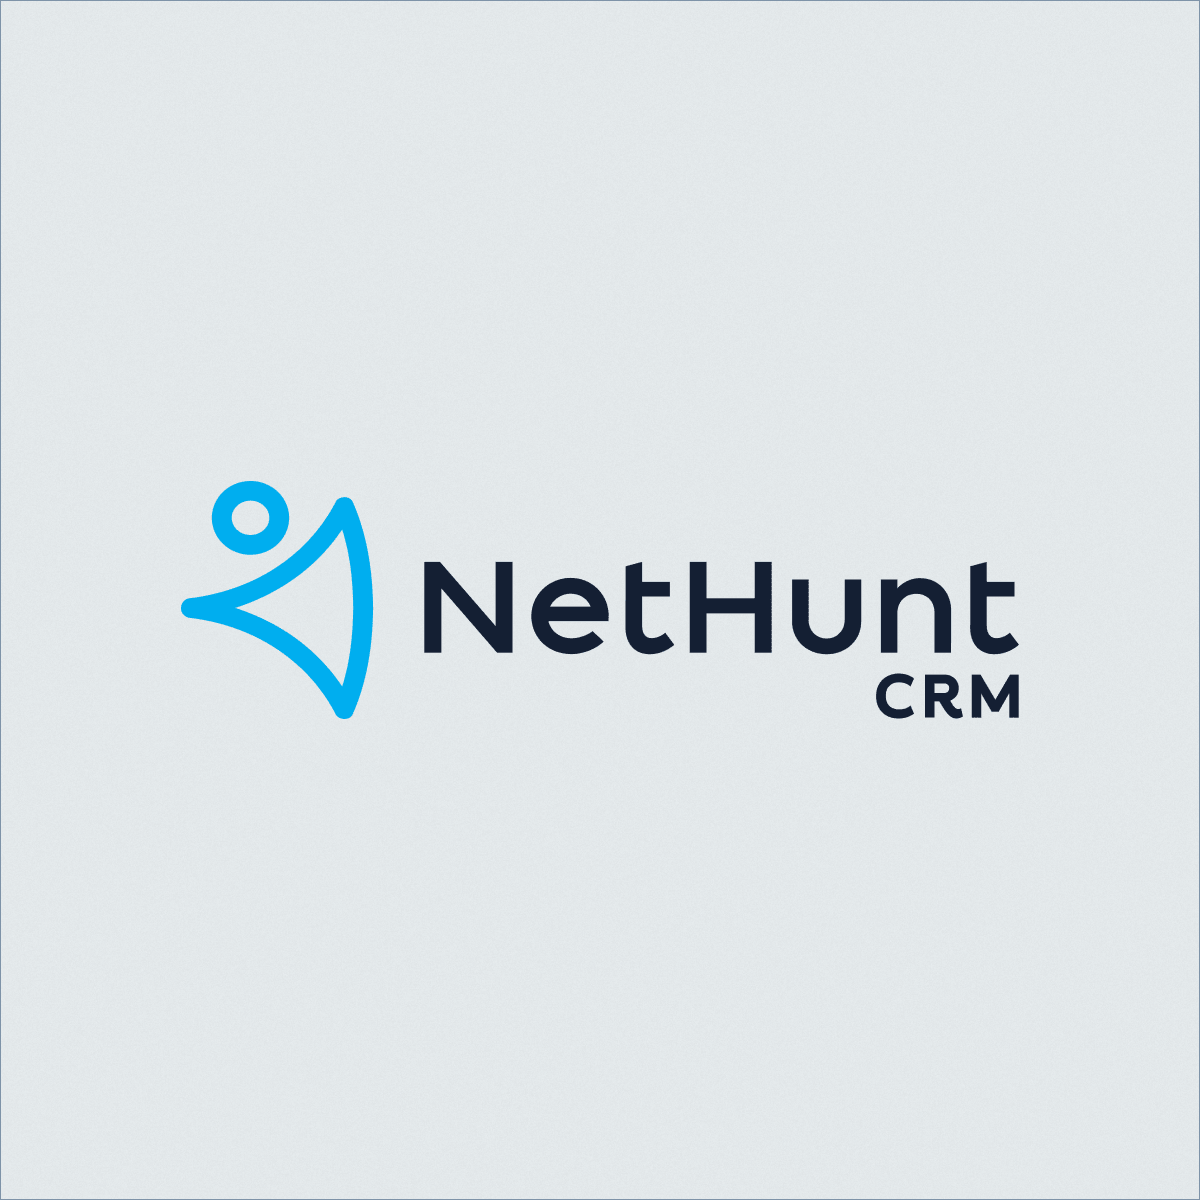 Simple, yet powerful CRM for small businesses | NetHunt CRM